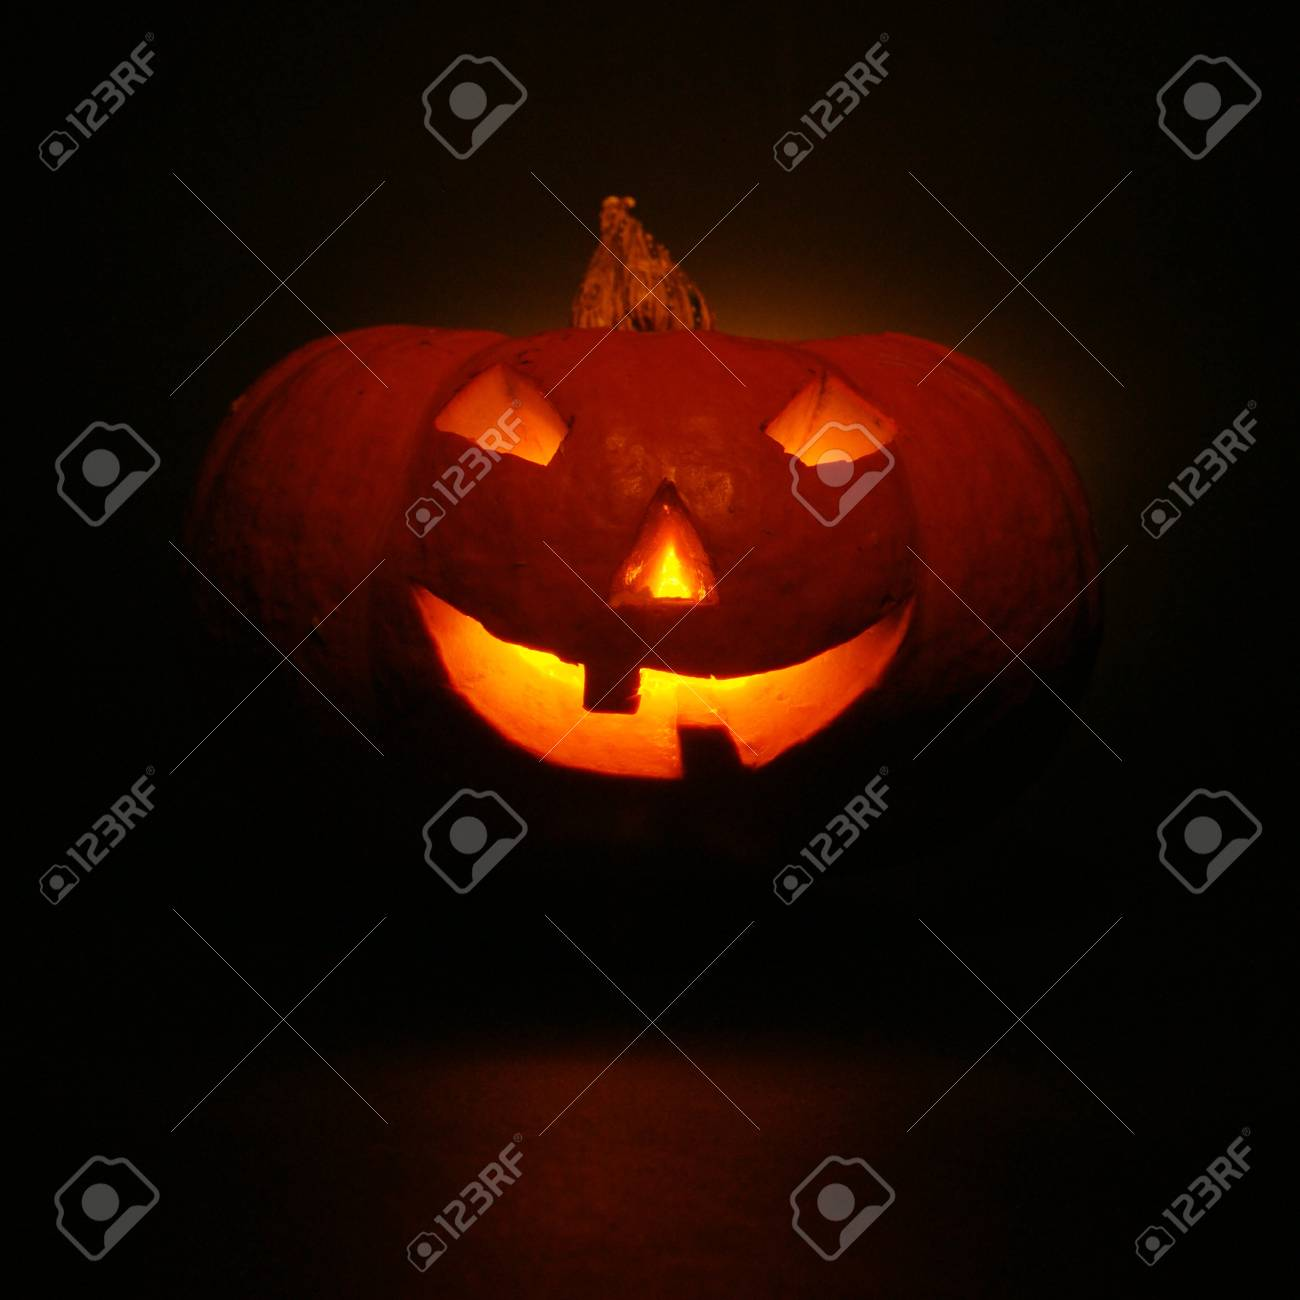 lantern, illuminating pumpkin in dark night Stock Photo - 10694461